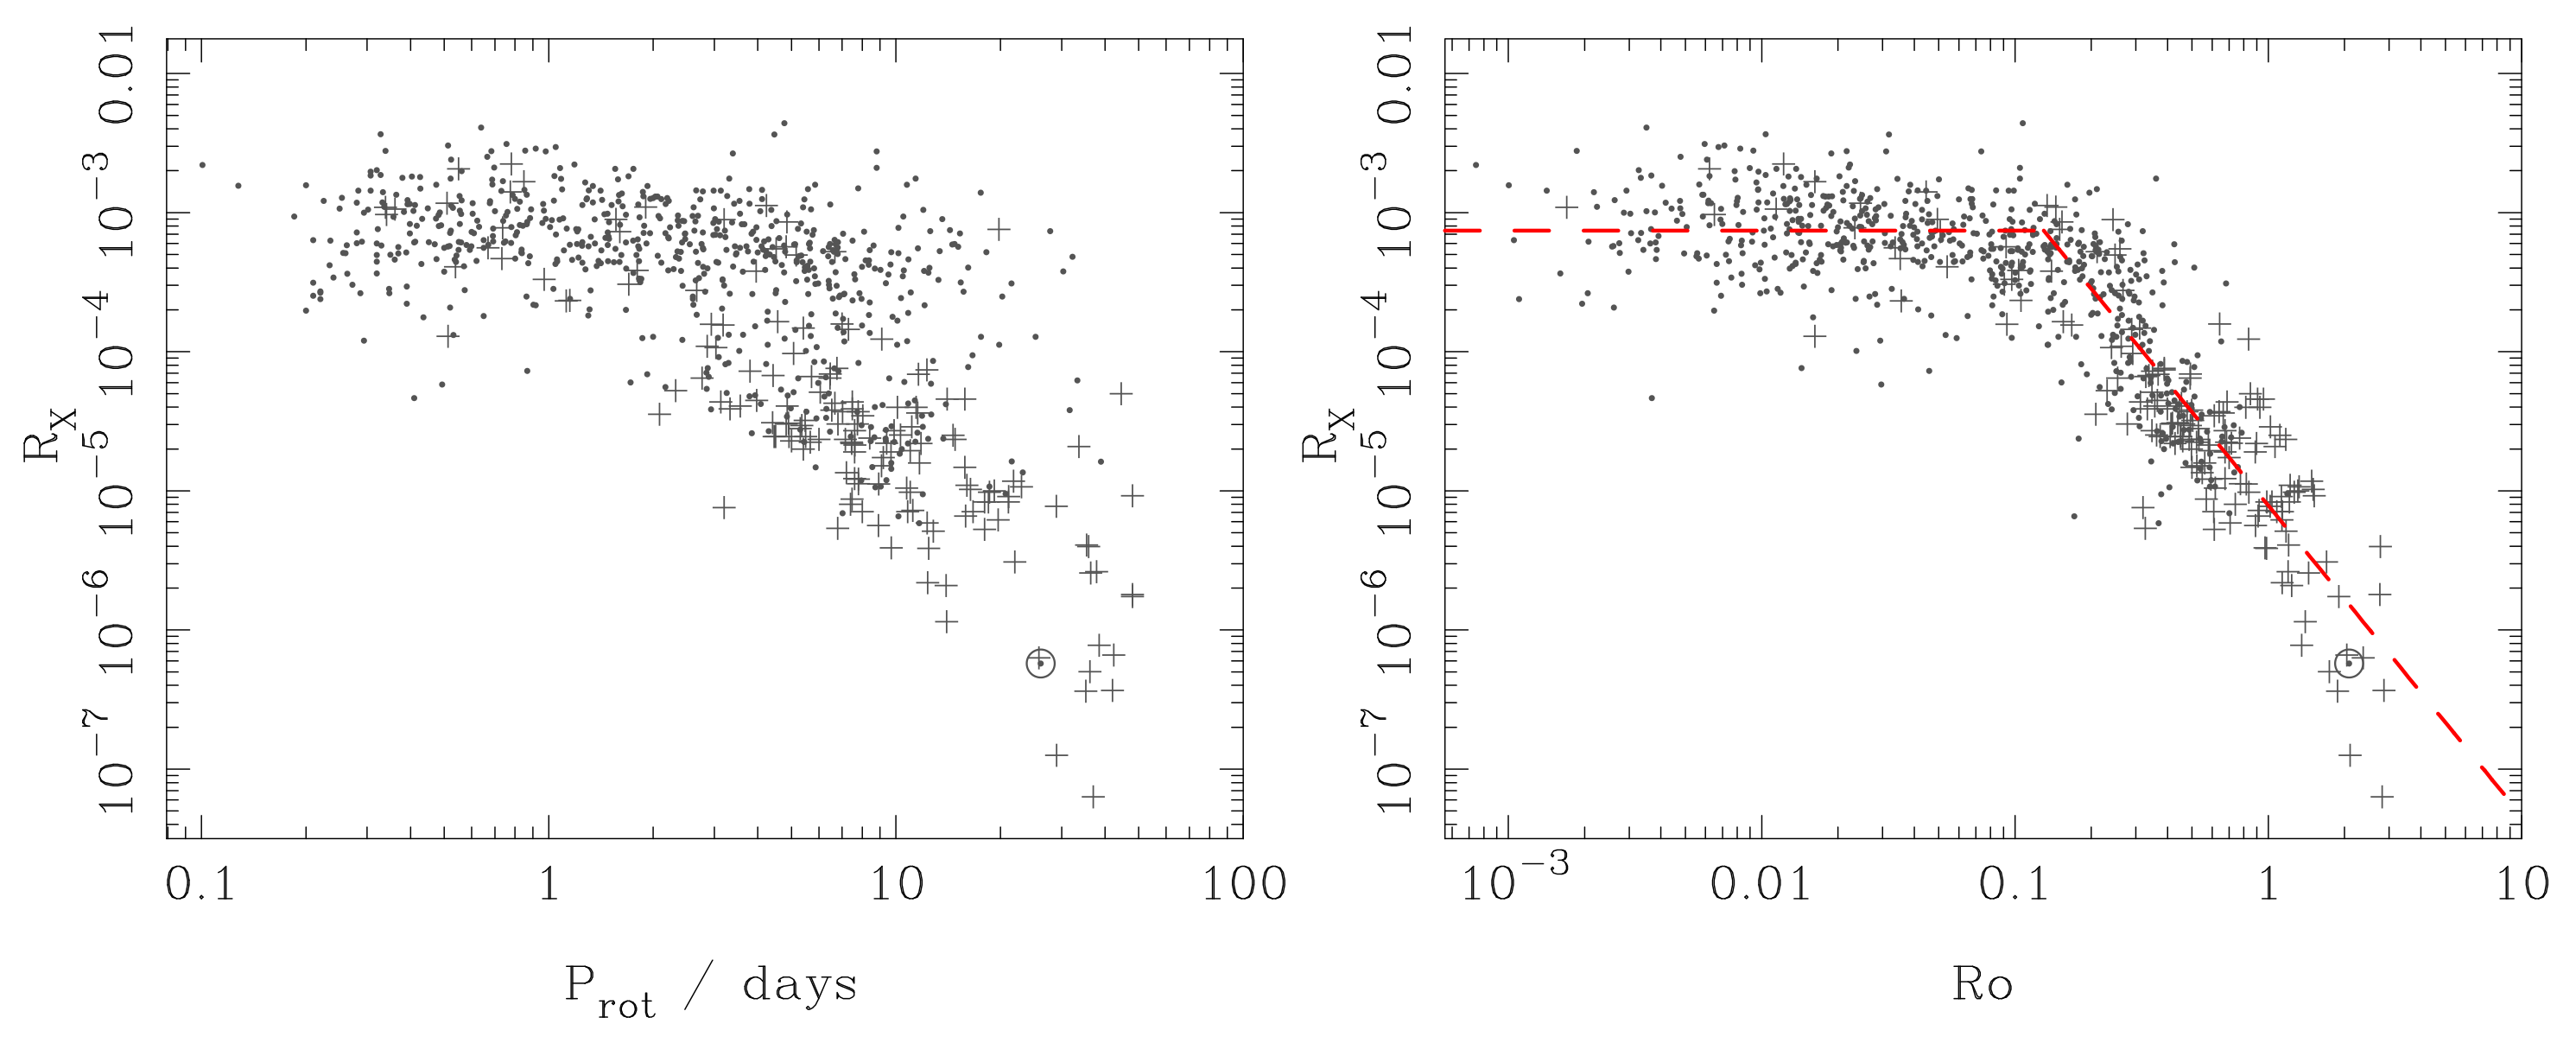 Magnetism In The Coolest Smallest Stars Bistable Schematicjpg And Rotation Are Correlated